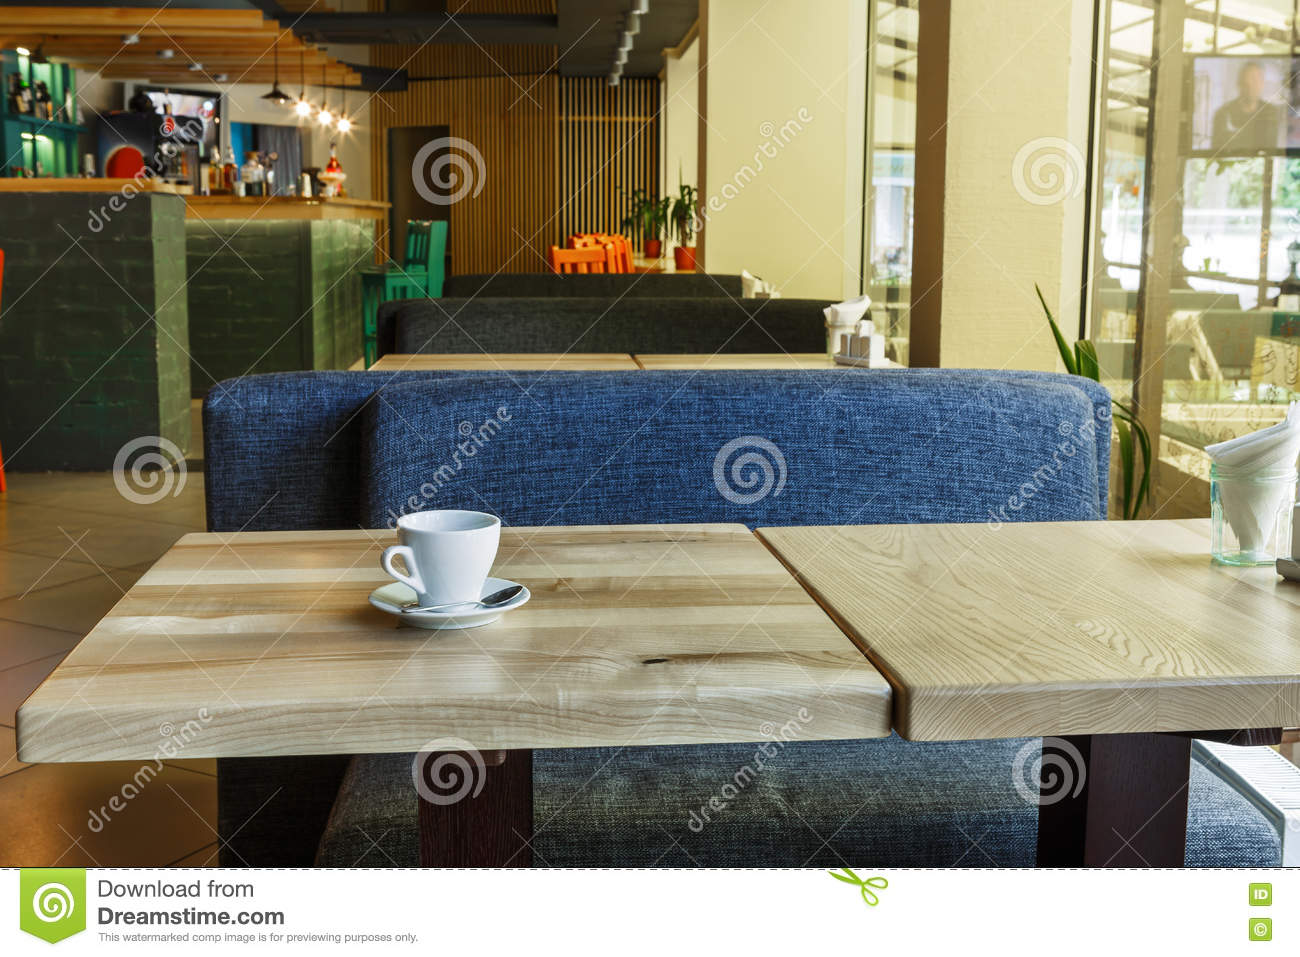 Modern Restaurant Bar Or Cafe Interior Stock Photo Image Of Party Furniture 78002650